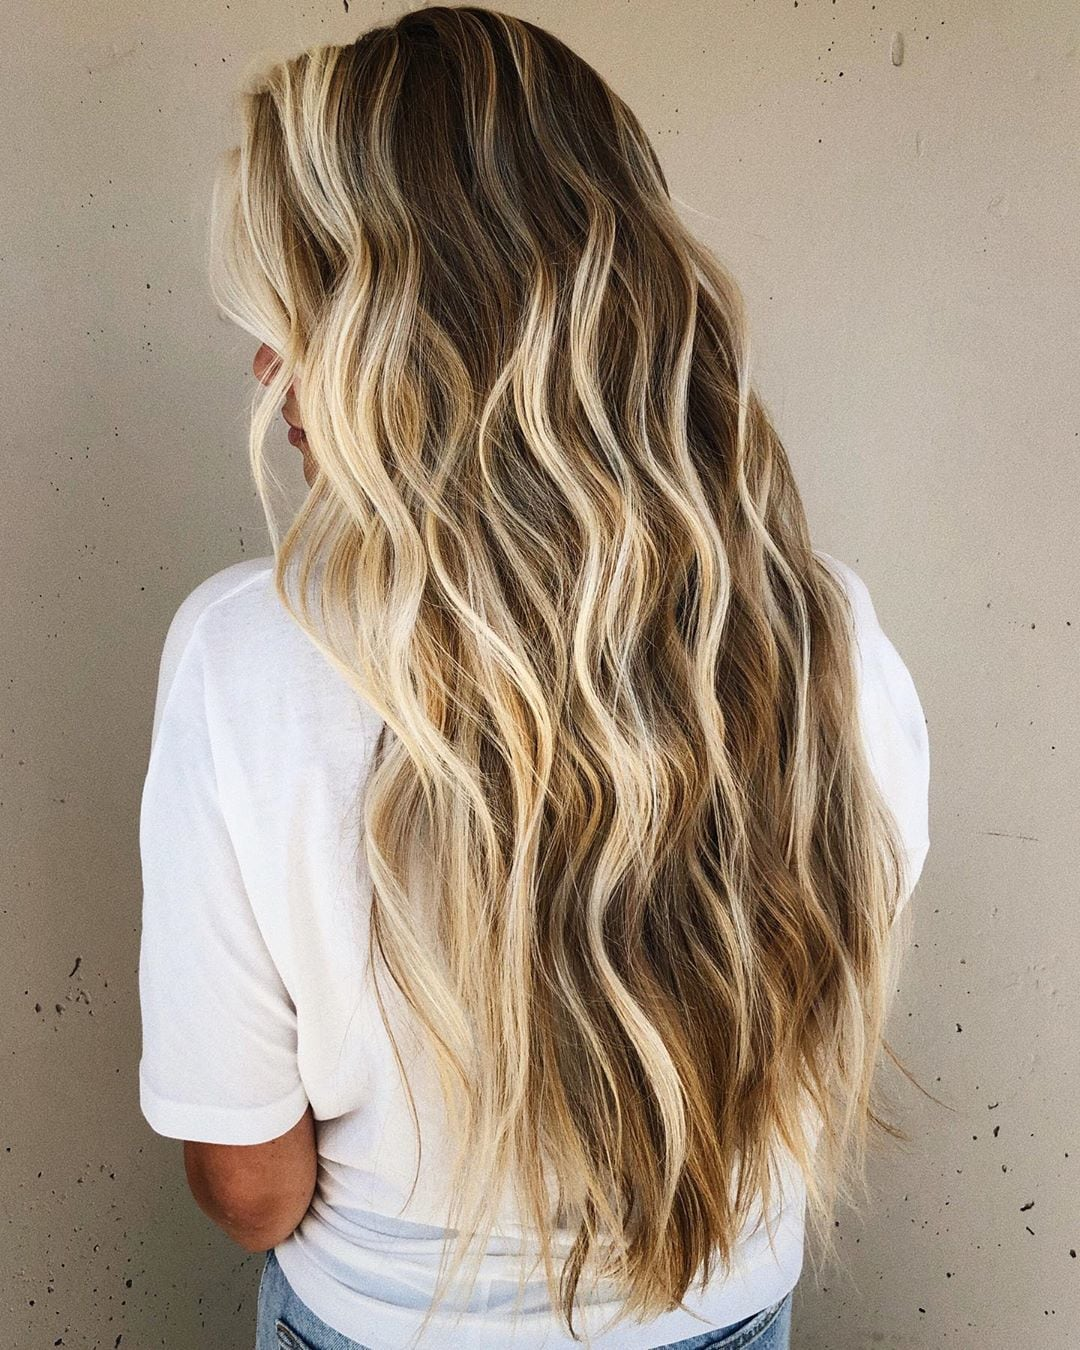 11 Ways to Get Beach Waves, Plus 11 Best Beach Hairstyles (11)